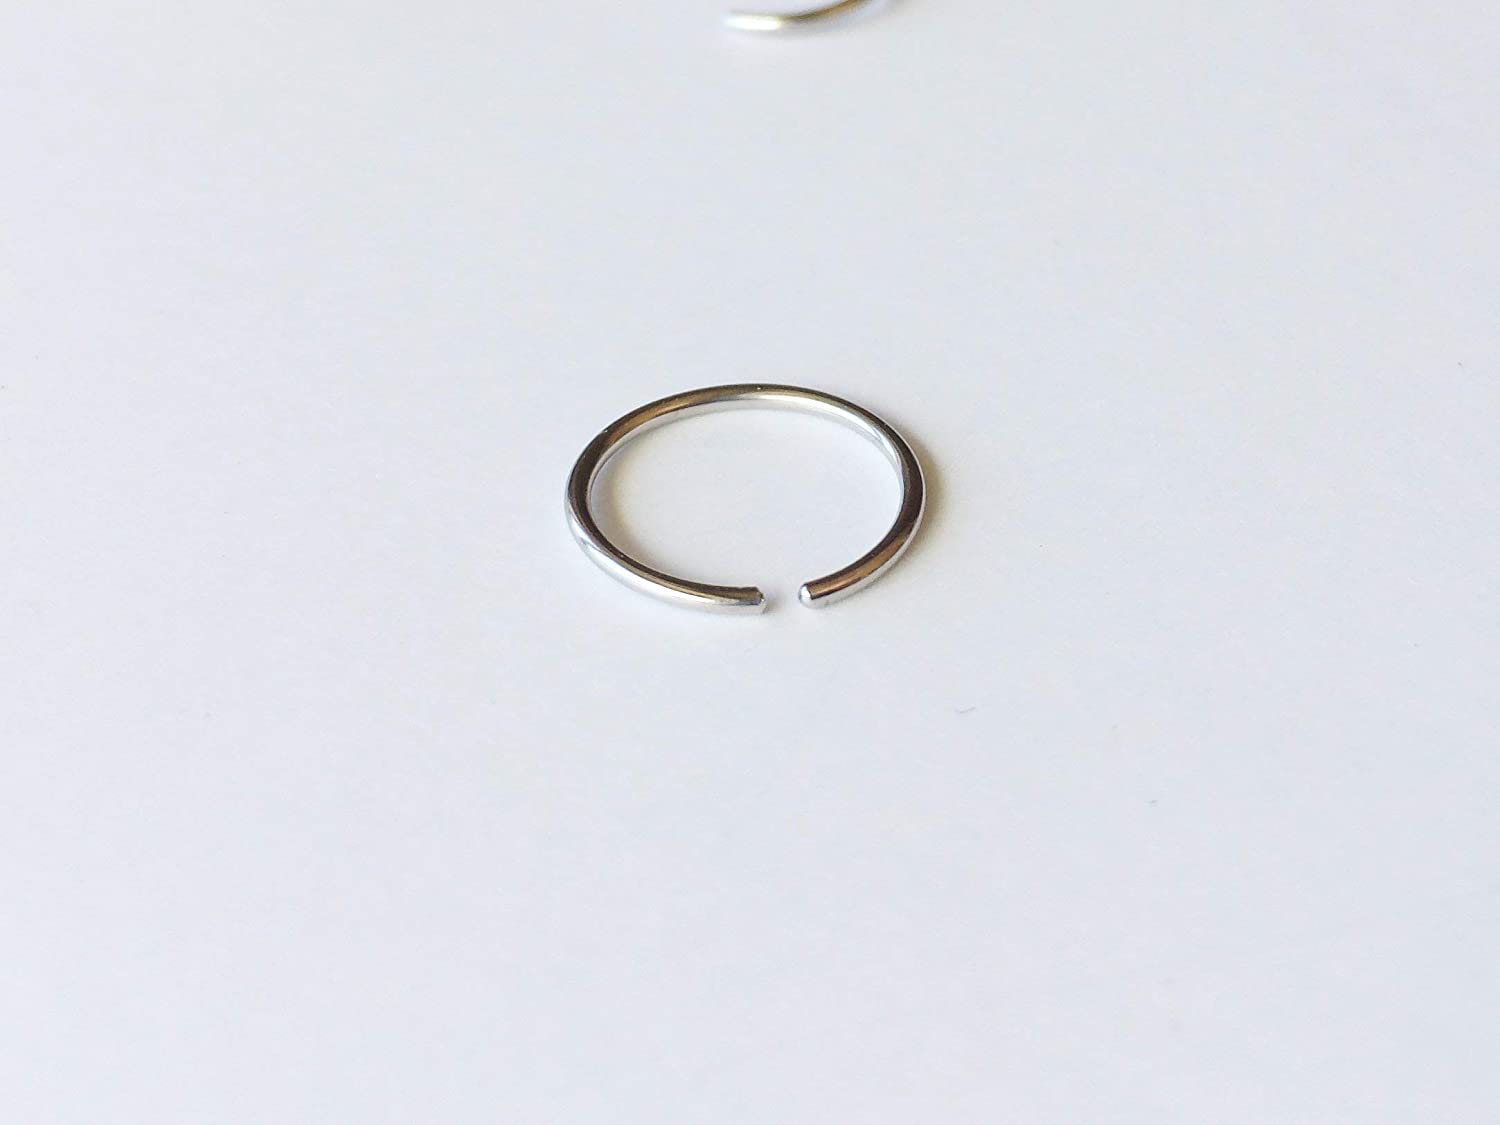 14k Solid White Gold Nose Ring Hoop Piercing Jewelry 20 Gauge 6mm 1